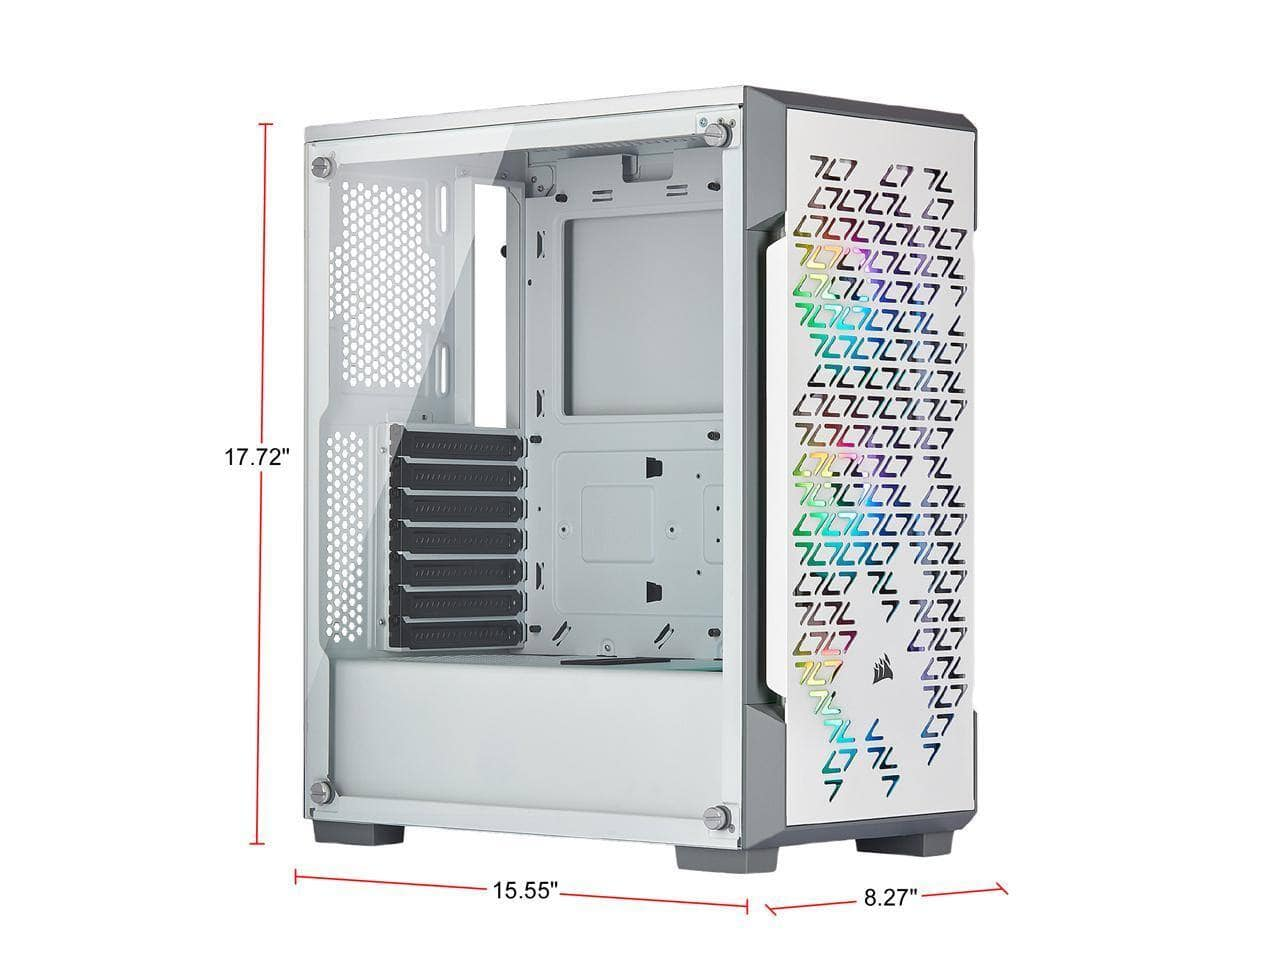 Corsair iCUE 220T RGB Airflow CC-9011174-WW White Steel / Plastic / Tempered Glass ATX Mid Tower Computer Case $79.99